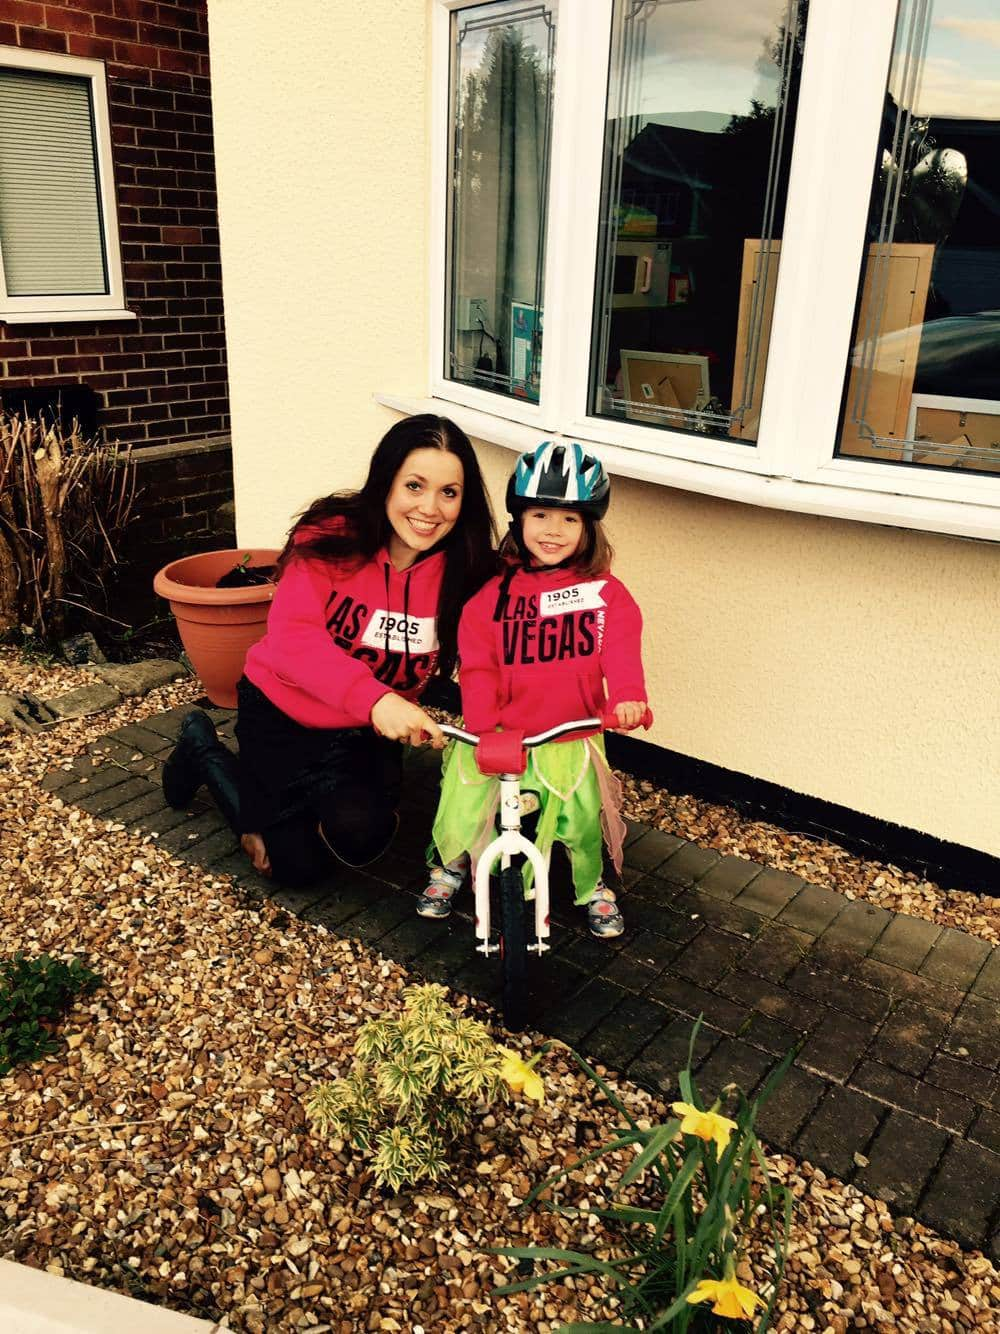 Primary School tests: Why I took my child out of school